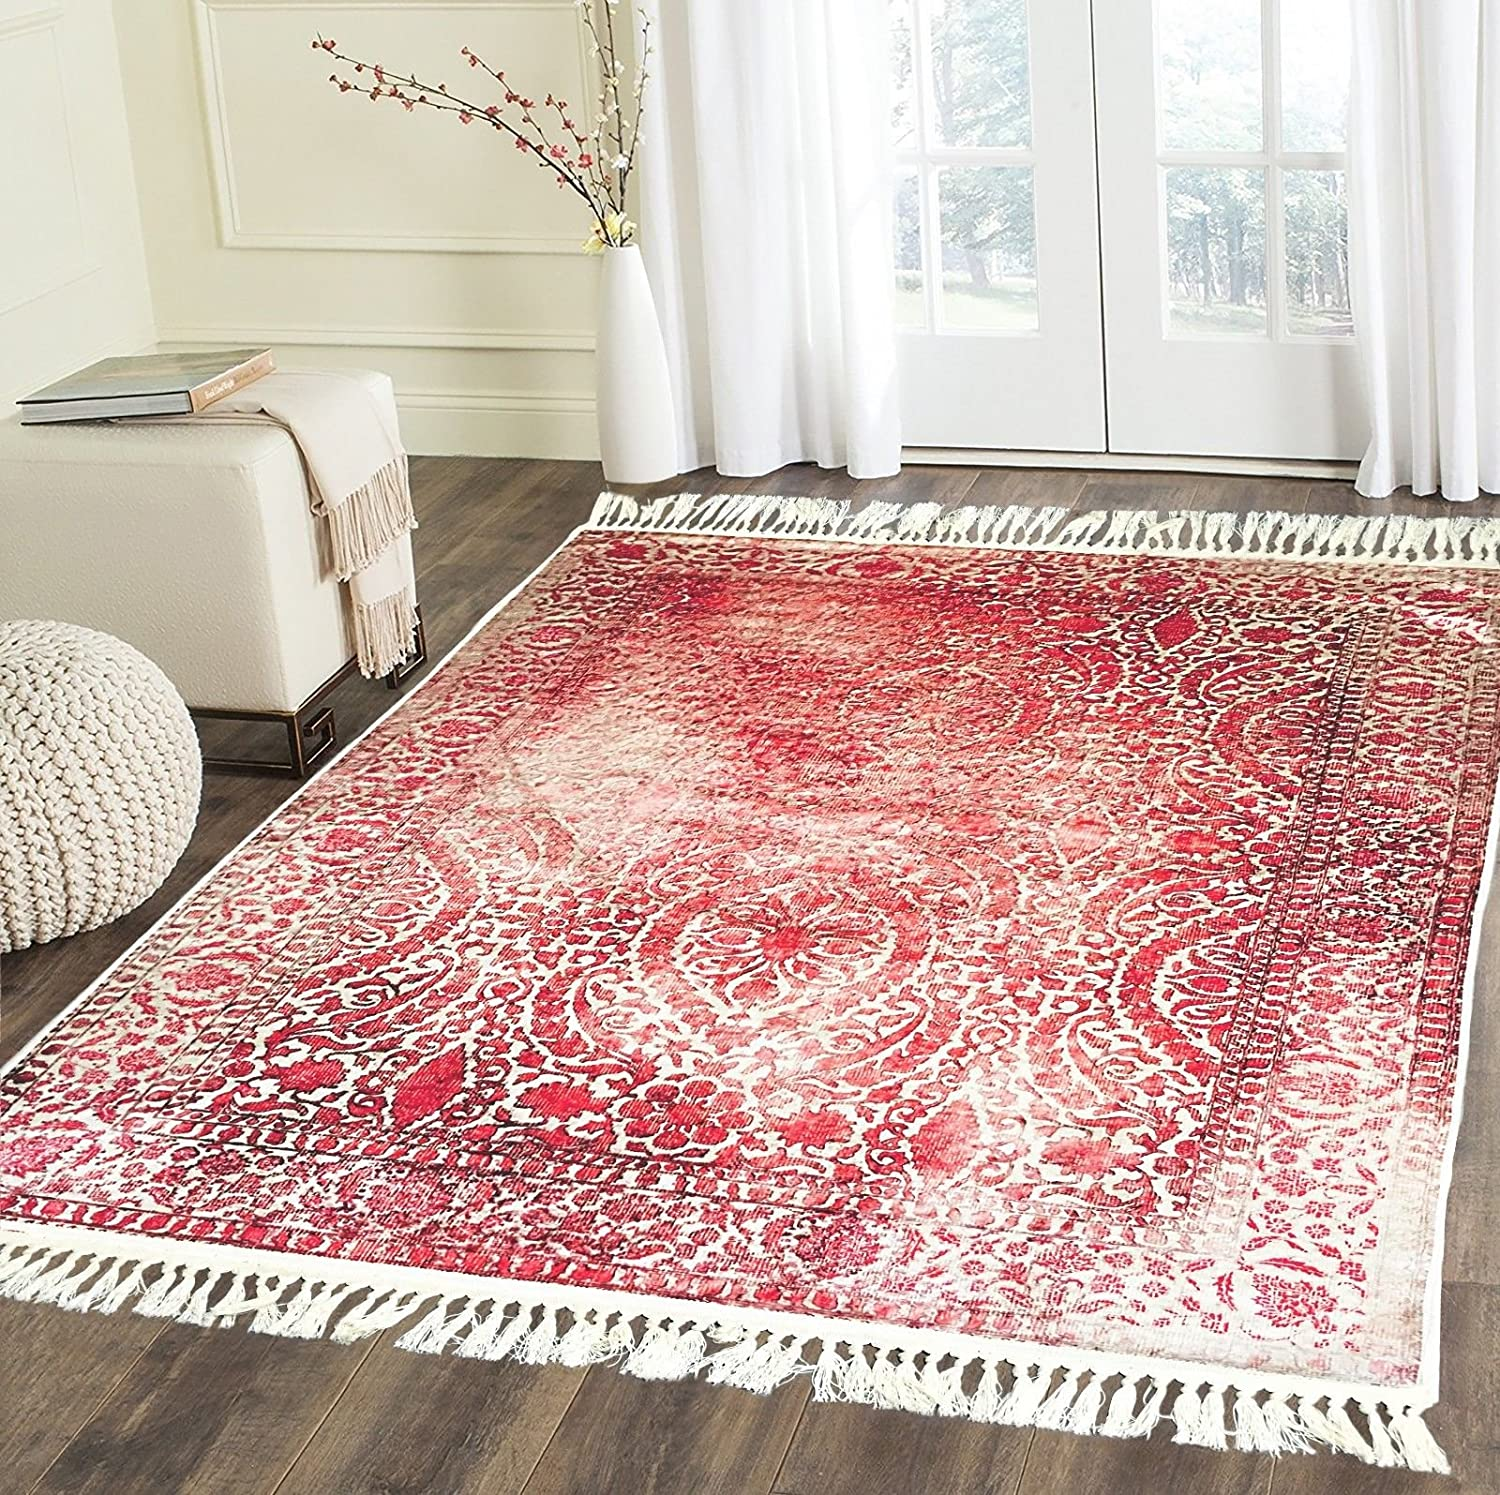 Home Must Haves Design Burgundy Beige High Density Luxury Large Soft Faux Silky Persian Traditional Oriental Flat Weave Hand-Knotted Area Rug Carpet for Living Room Bedroom (5'3 x 7'6') 5' 3 x 7' 6'